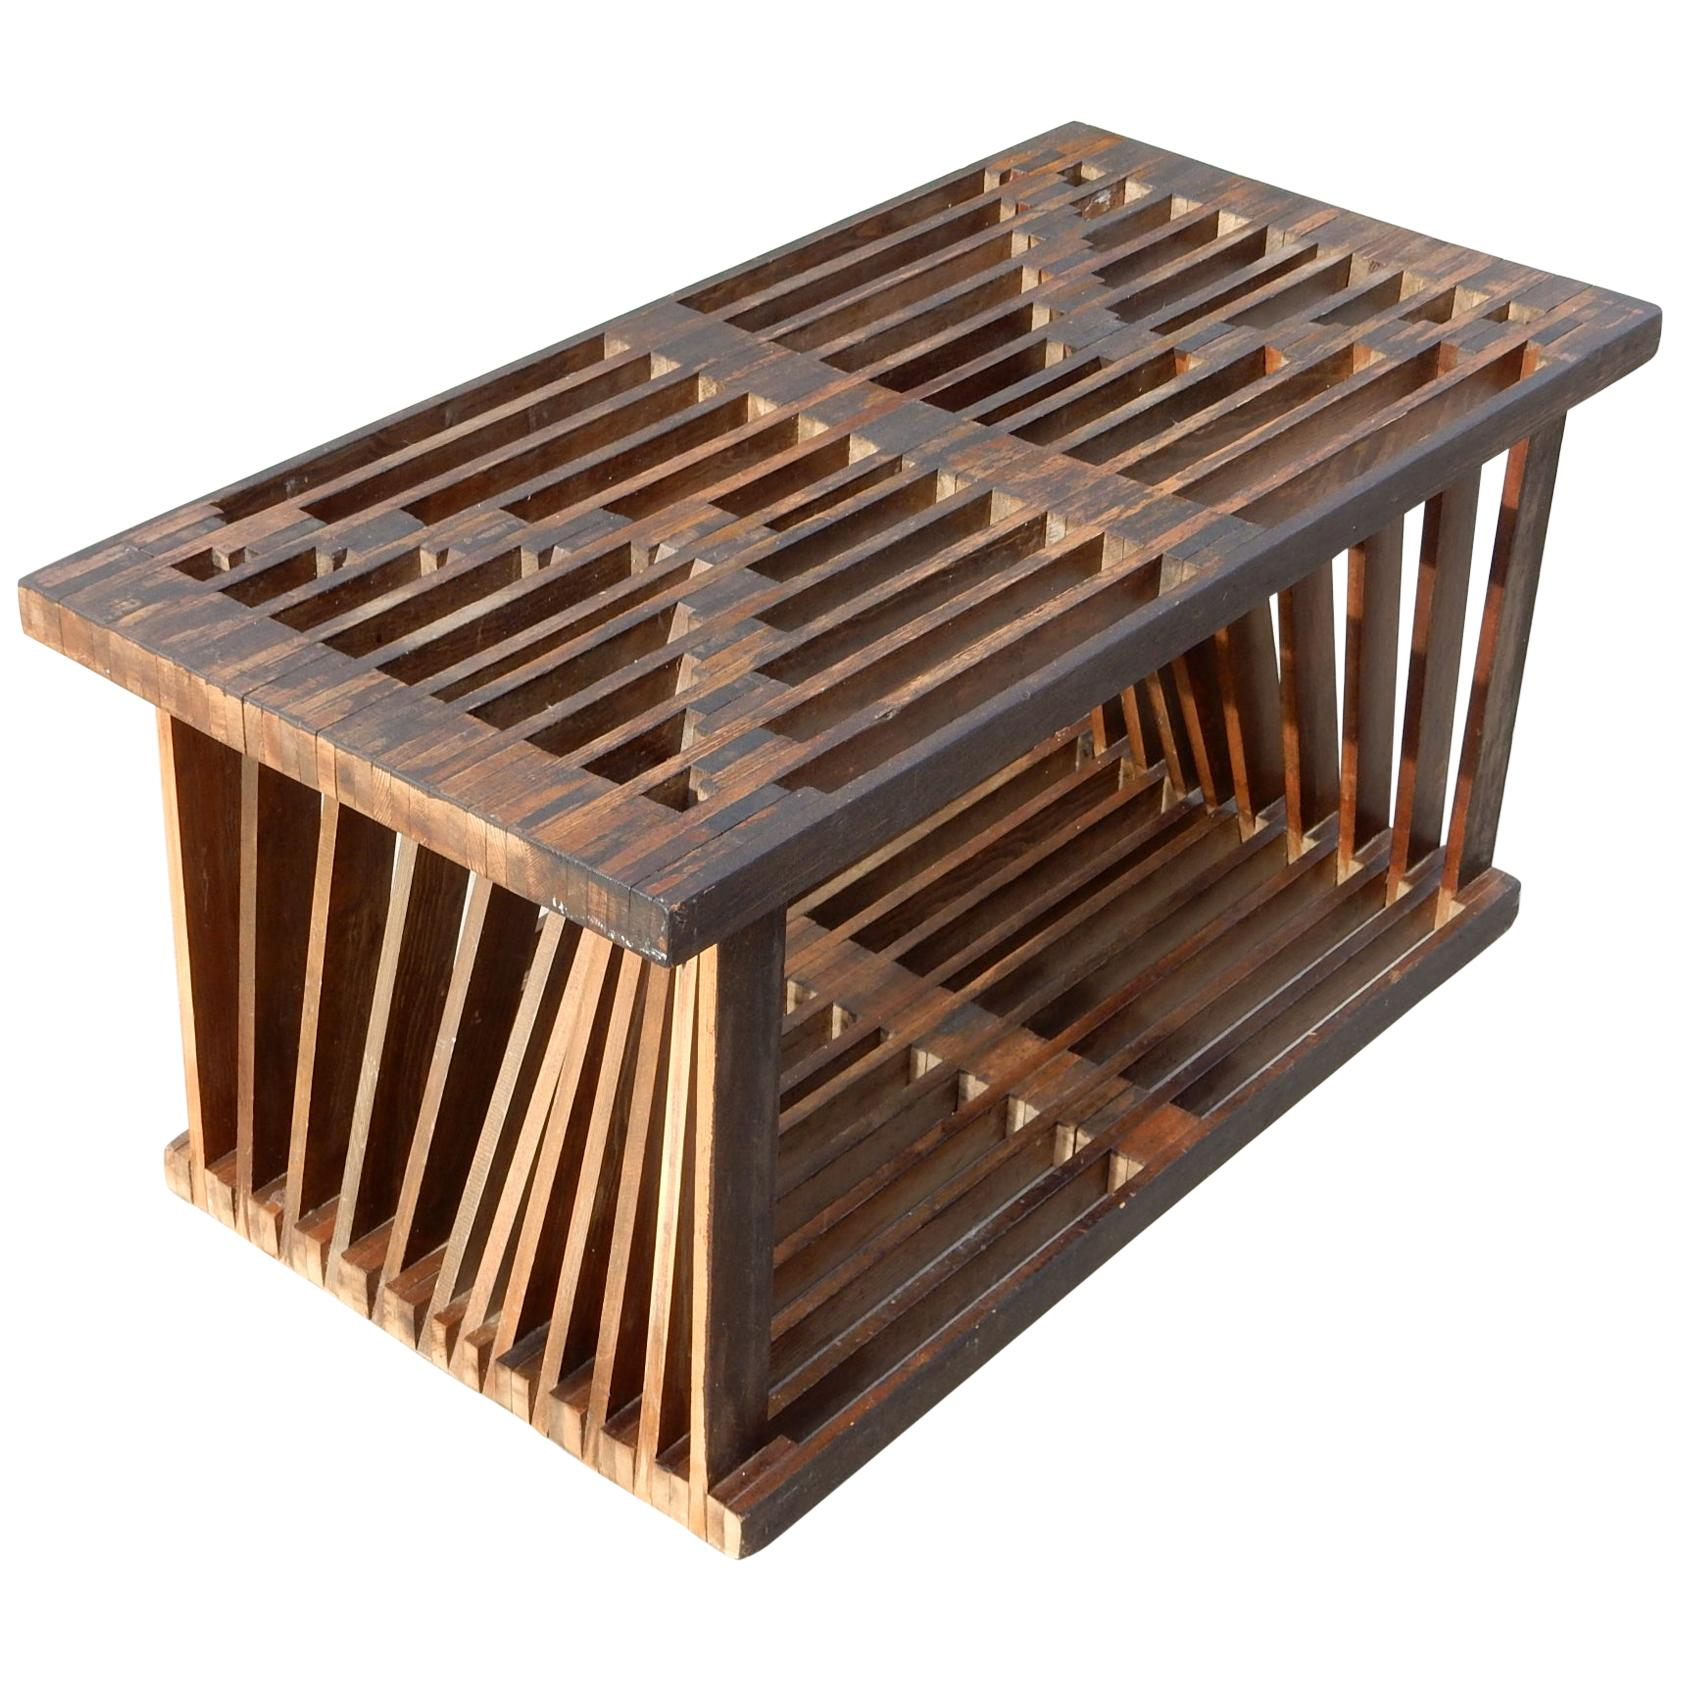 Midcentury Architectural Slat Coffee Table or Bench